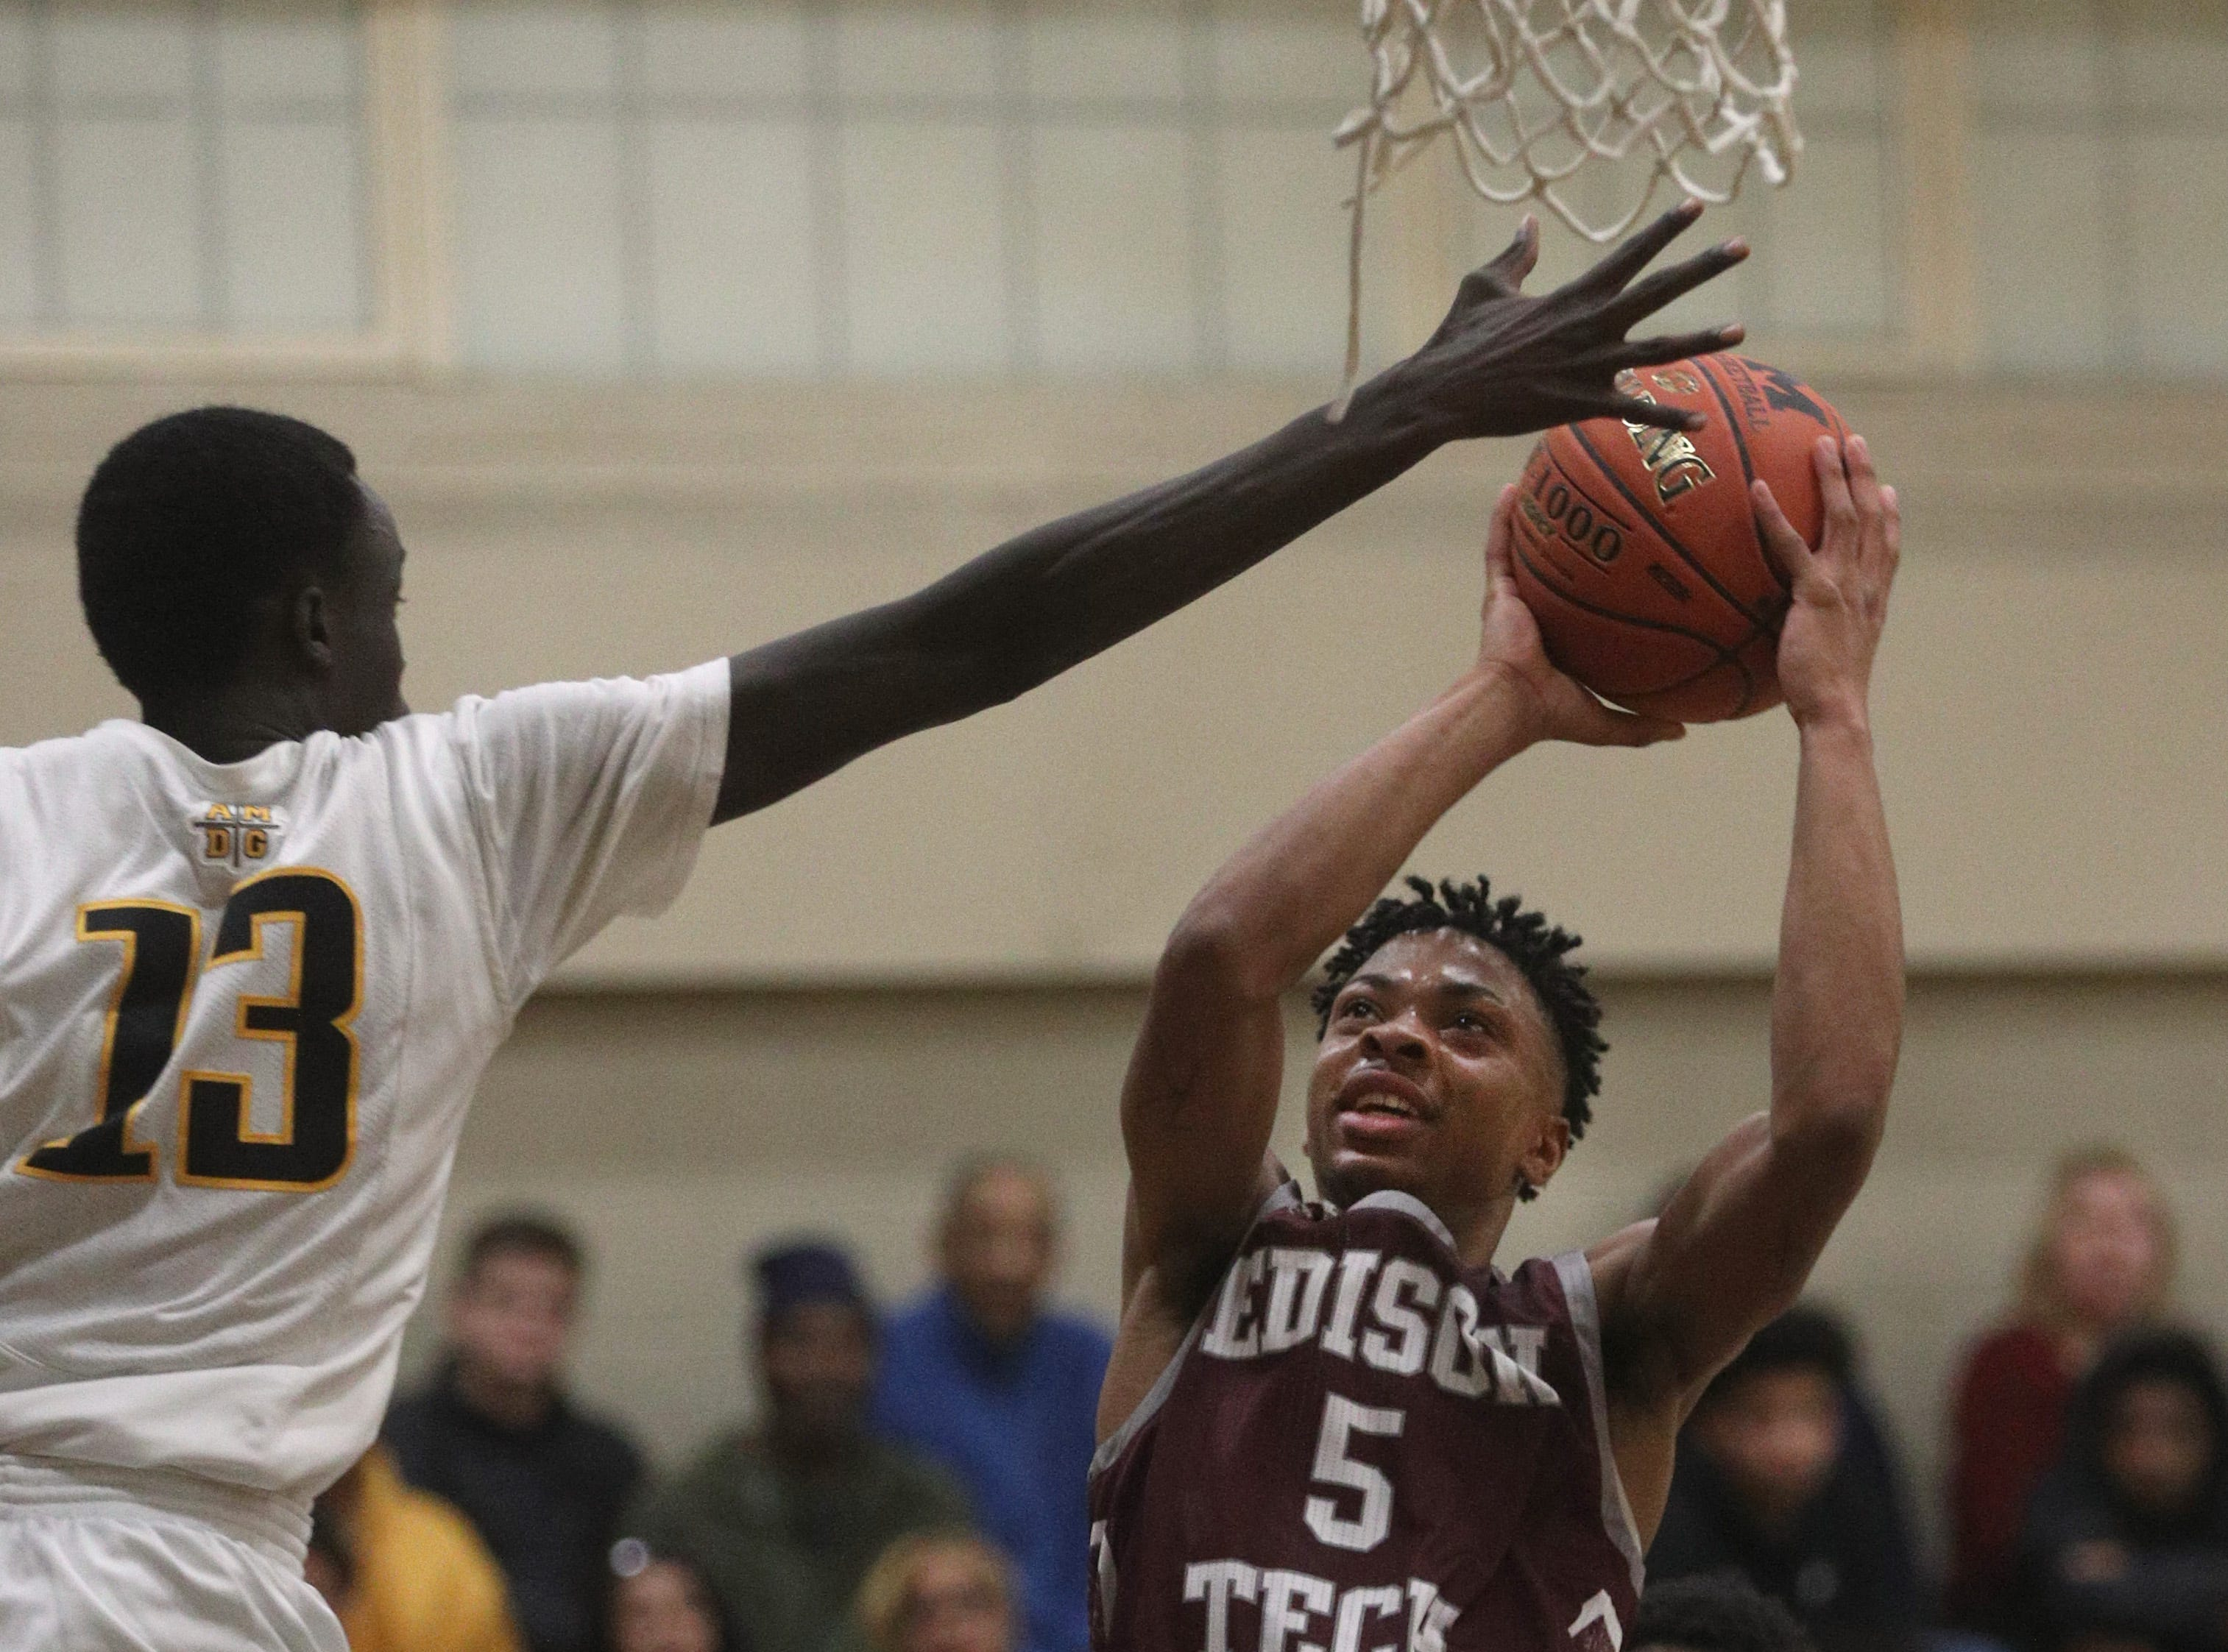 Edison's Alton Knight (5) shoots around the outstretched arm of McQuaid's Rueben Daniel.